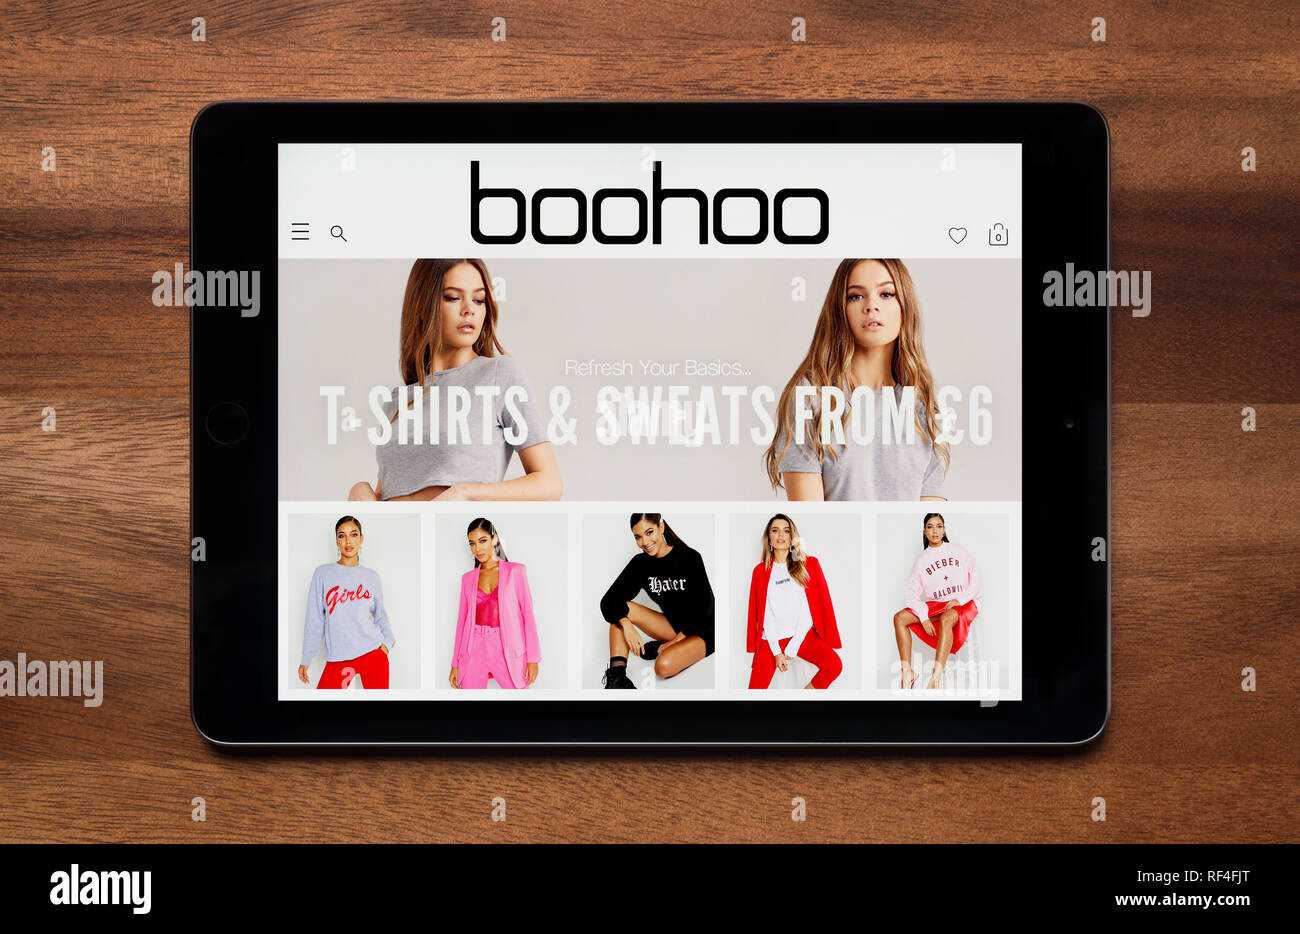 94163e0608c The website of Boohoo is seen on an iPad tablet, which is resting on a